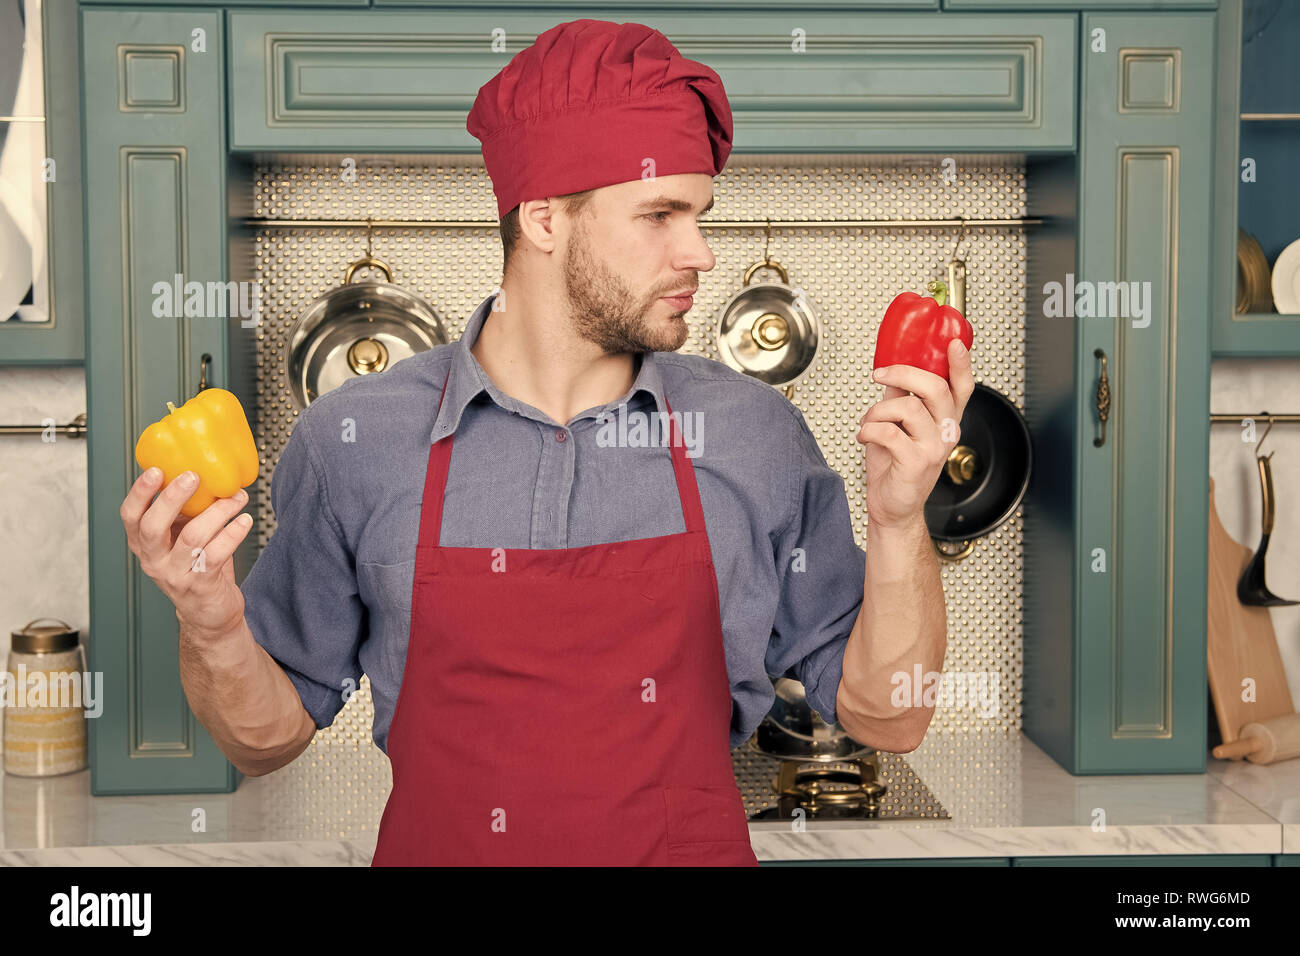 Choose not familiar vegetable. Work with less familiar ingredients. By using ingredients you do not cook often you thinking about specific items smell and meld other flavors in familiar dishes. - Stock Image